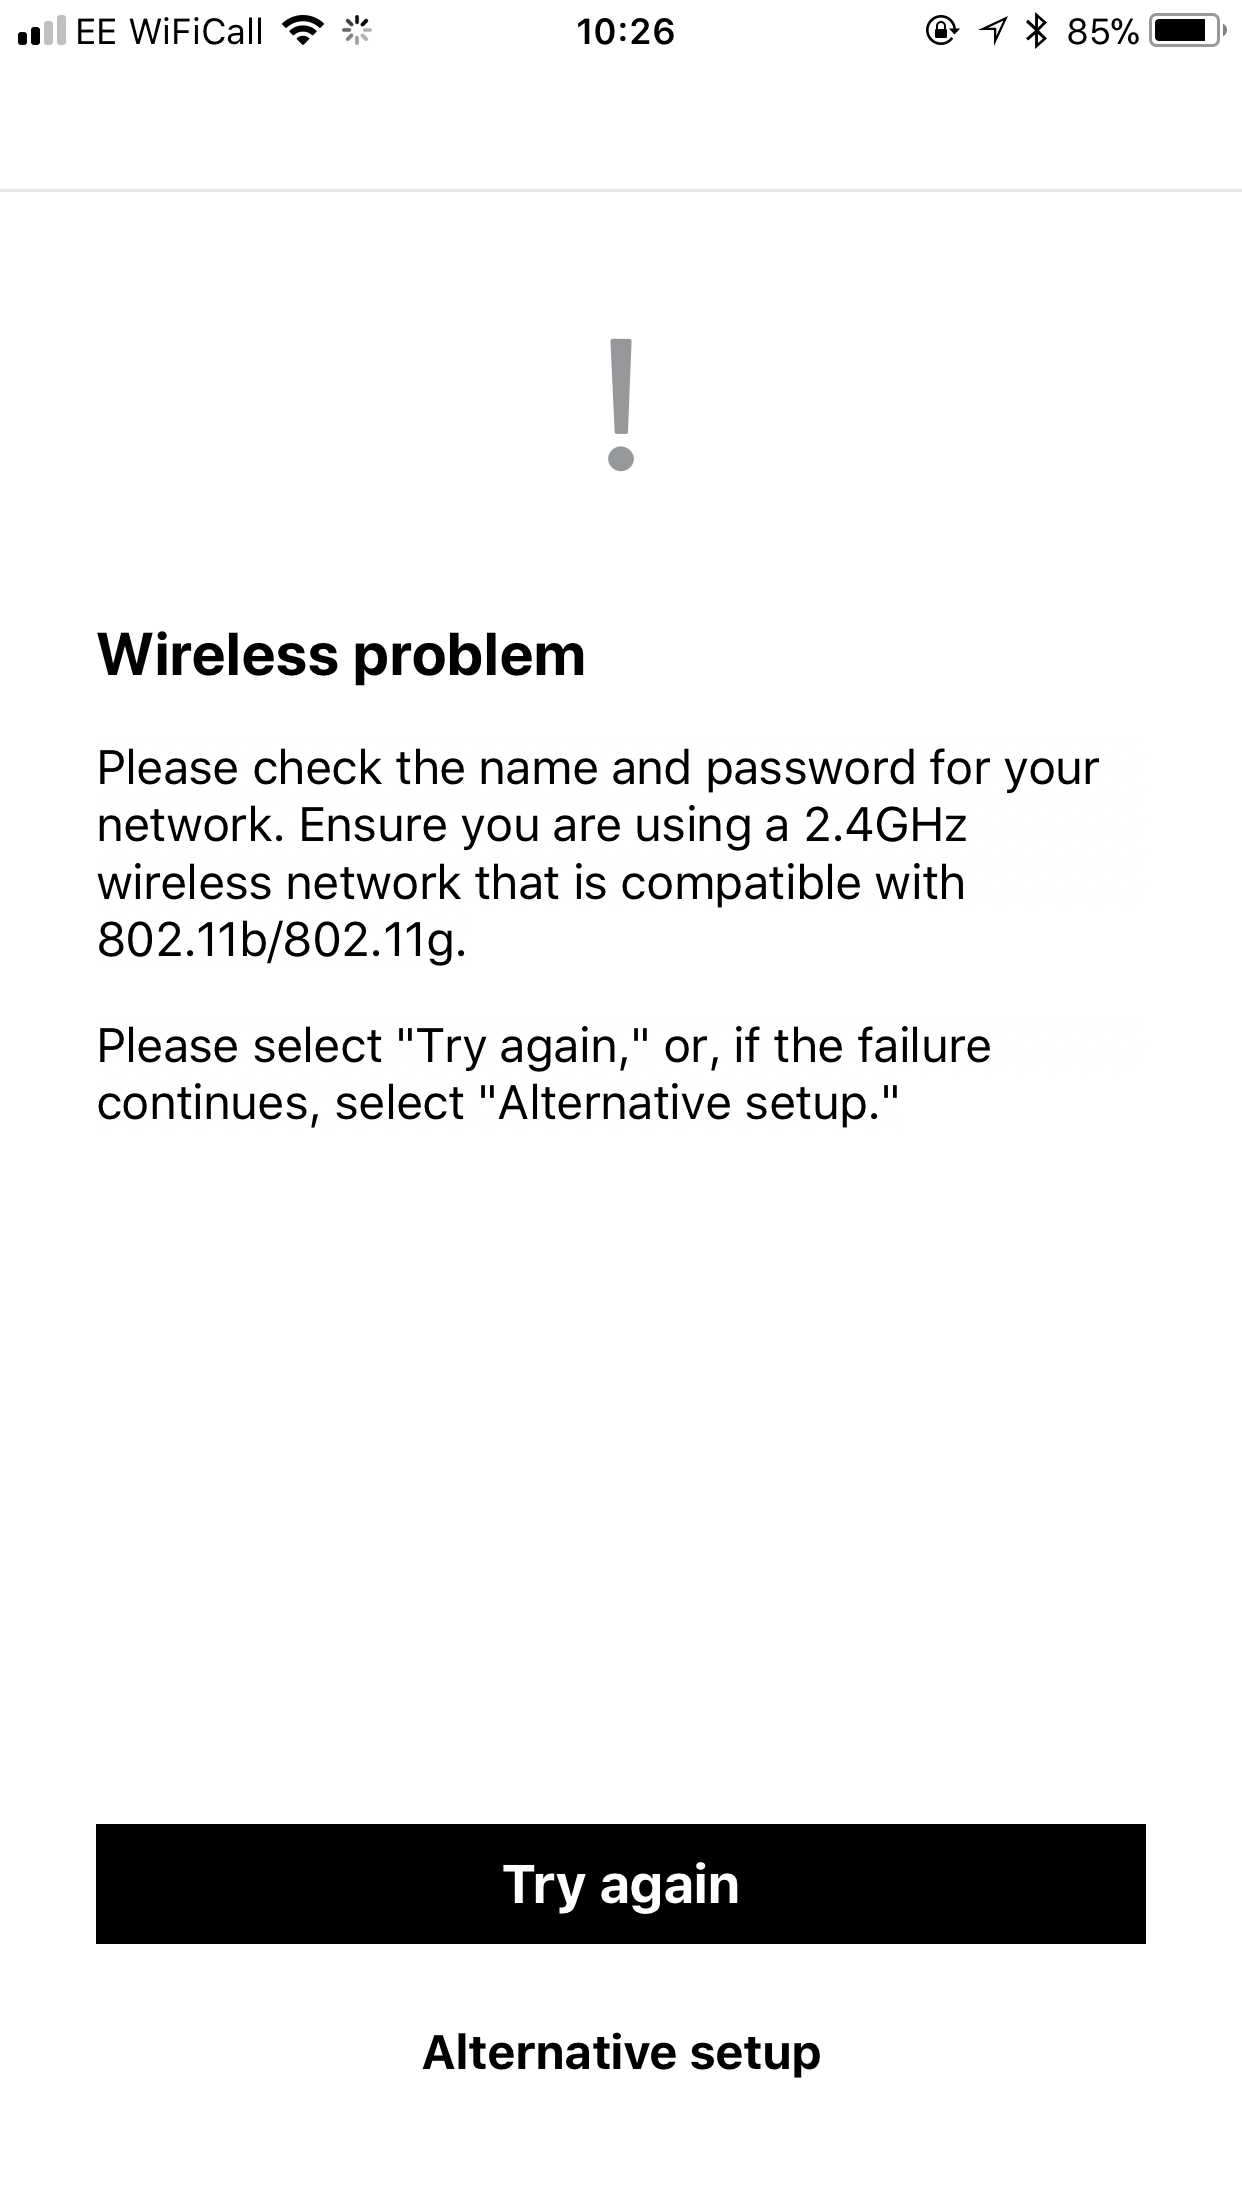 I don't see SONOS in my wireless network when I try to set